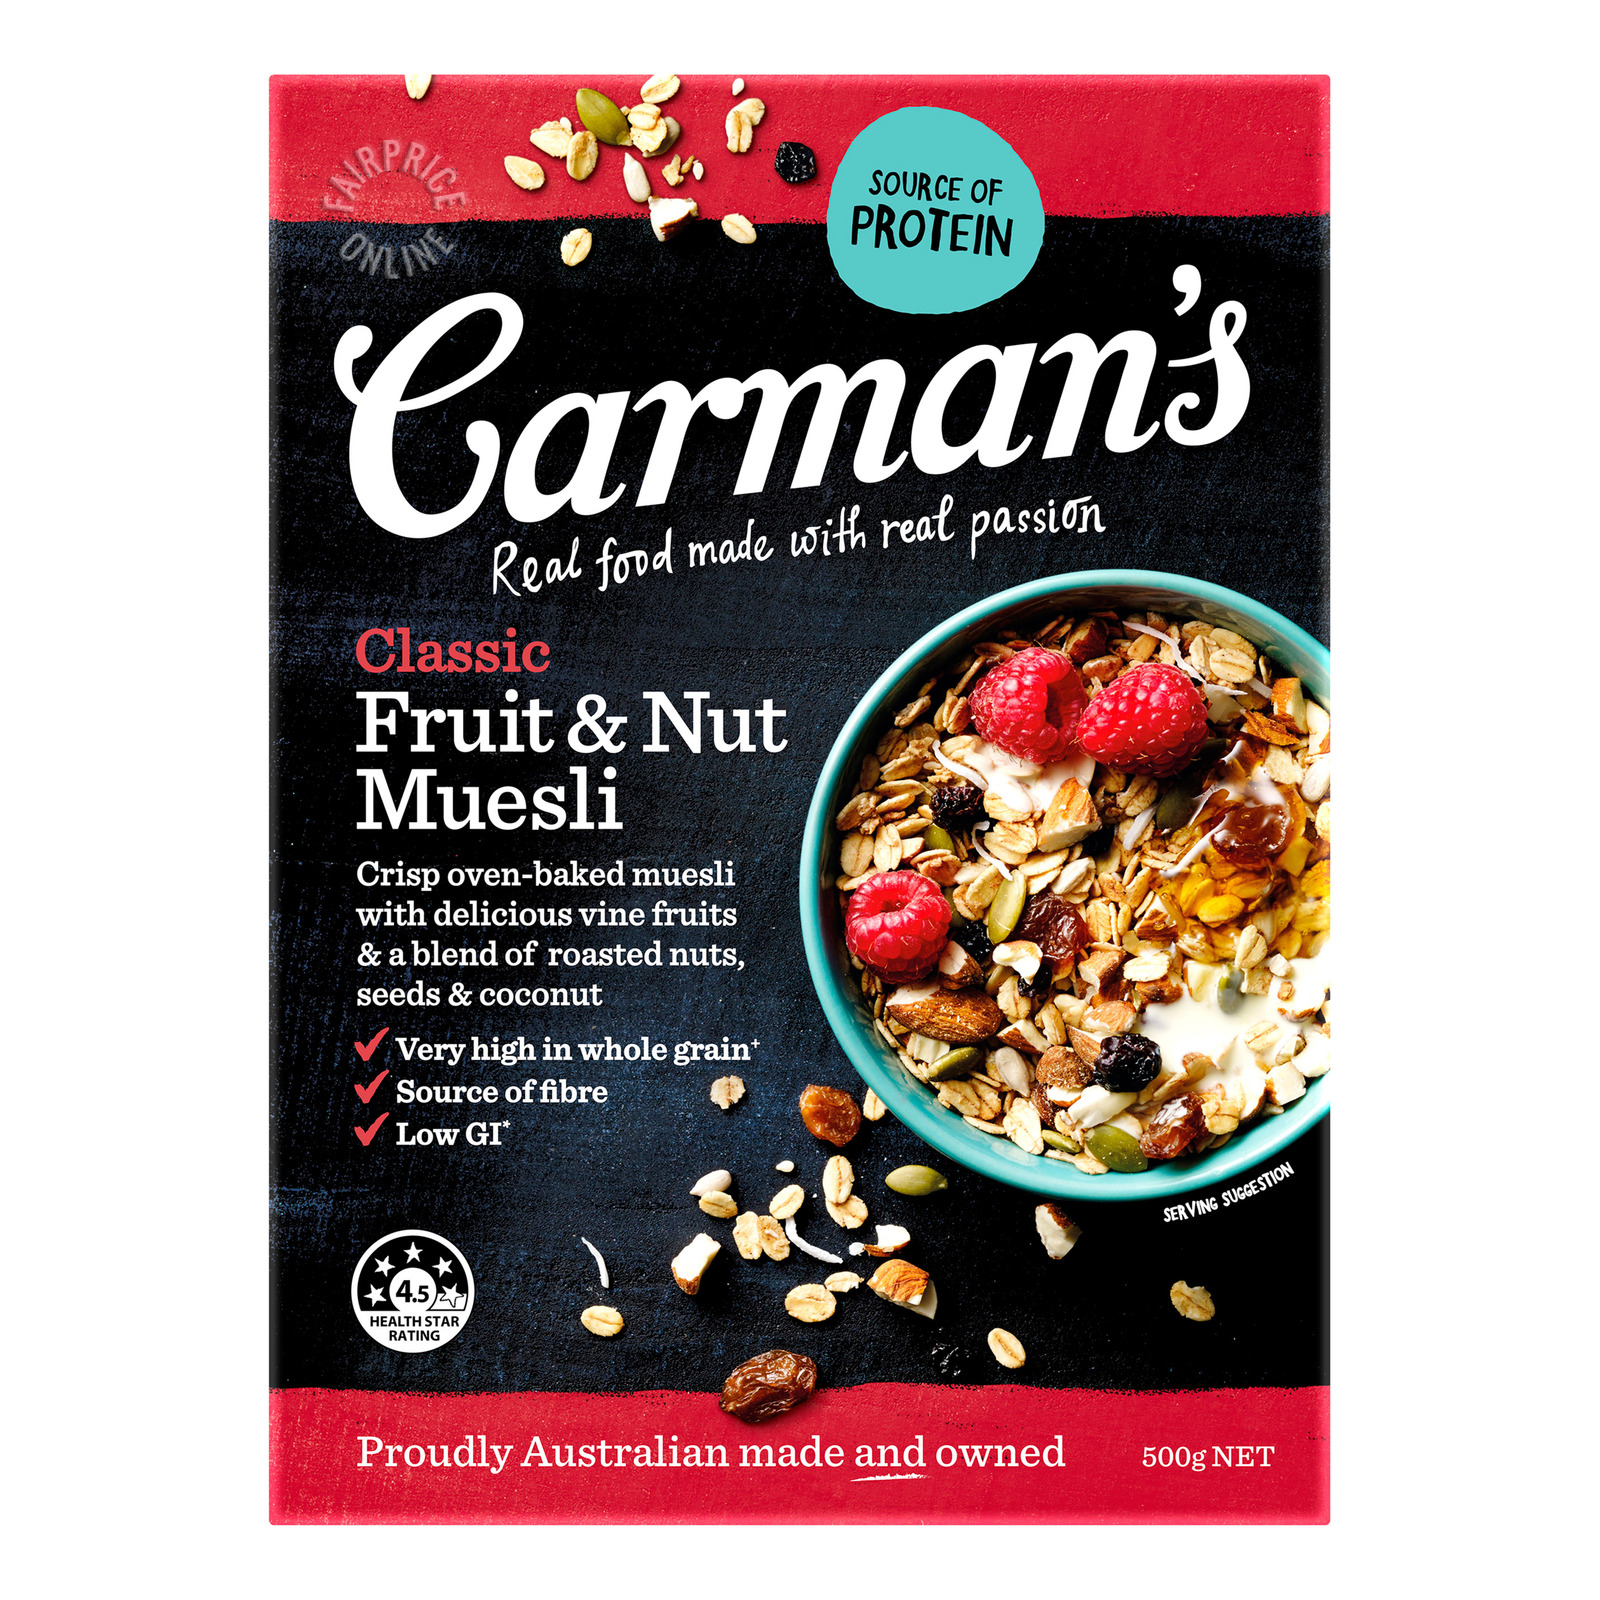 Carman's Muesli - Classic (Fruit & Nut)